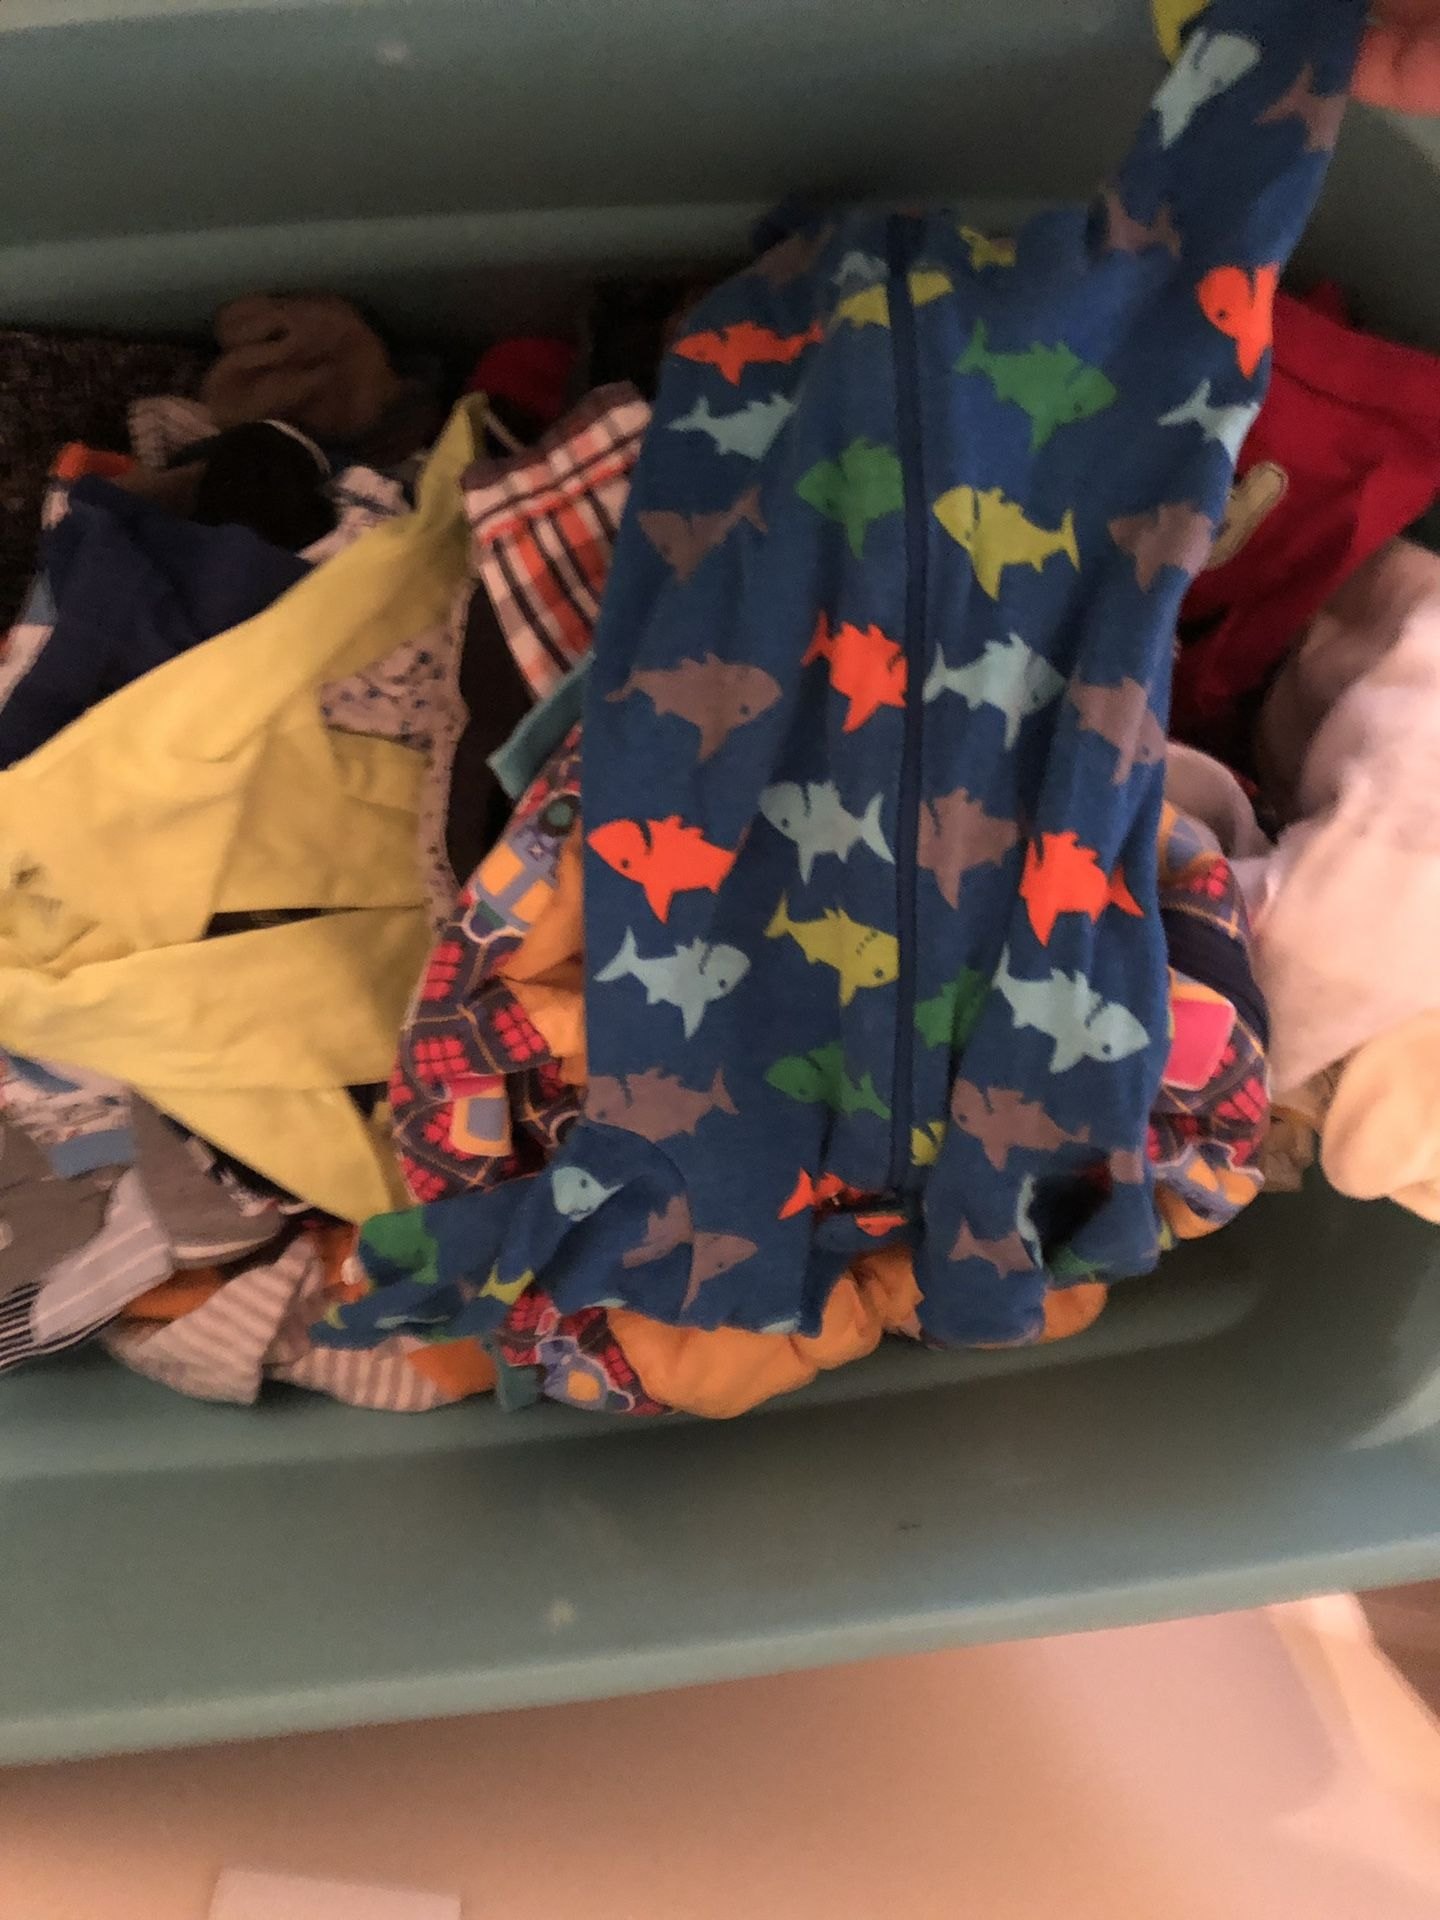 Huge tub of baby boy clothes